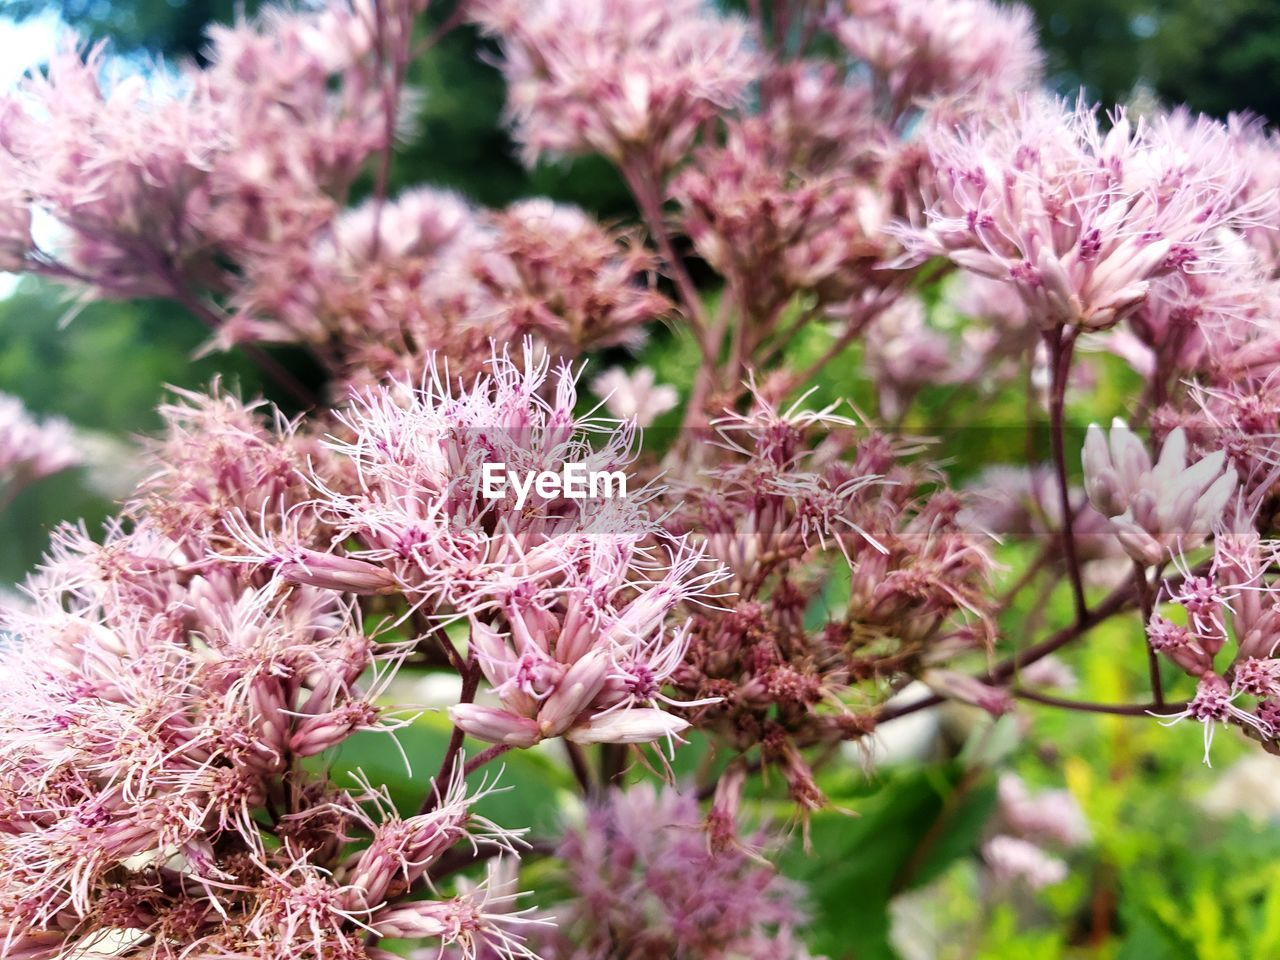 flower, flowering plant, plant, pink color, growth, beauty in nature, fragility, freshness, vulnerability, close-up, flower head, nature, petal, selective focus, inflorescence, no people, day, blossom, springtime, outdoors, bunch of flowers, lilac